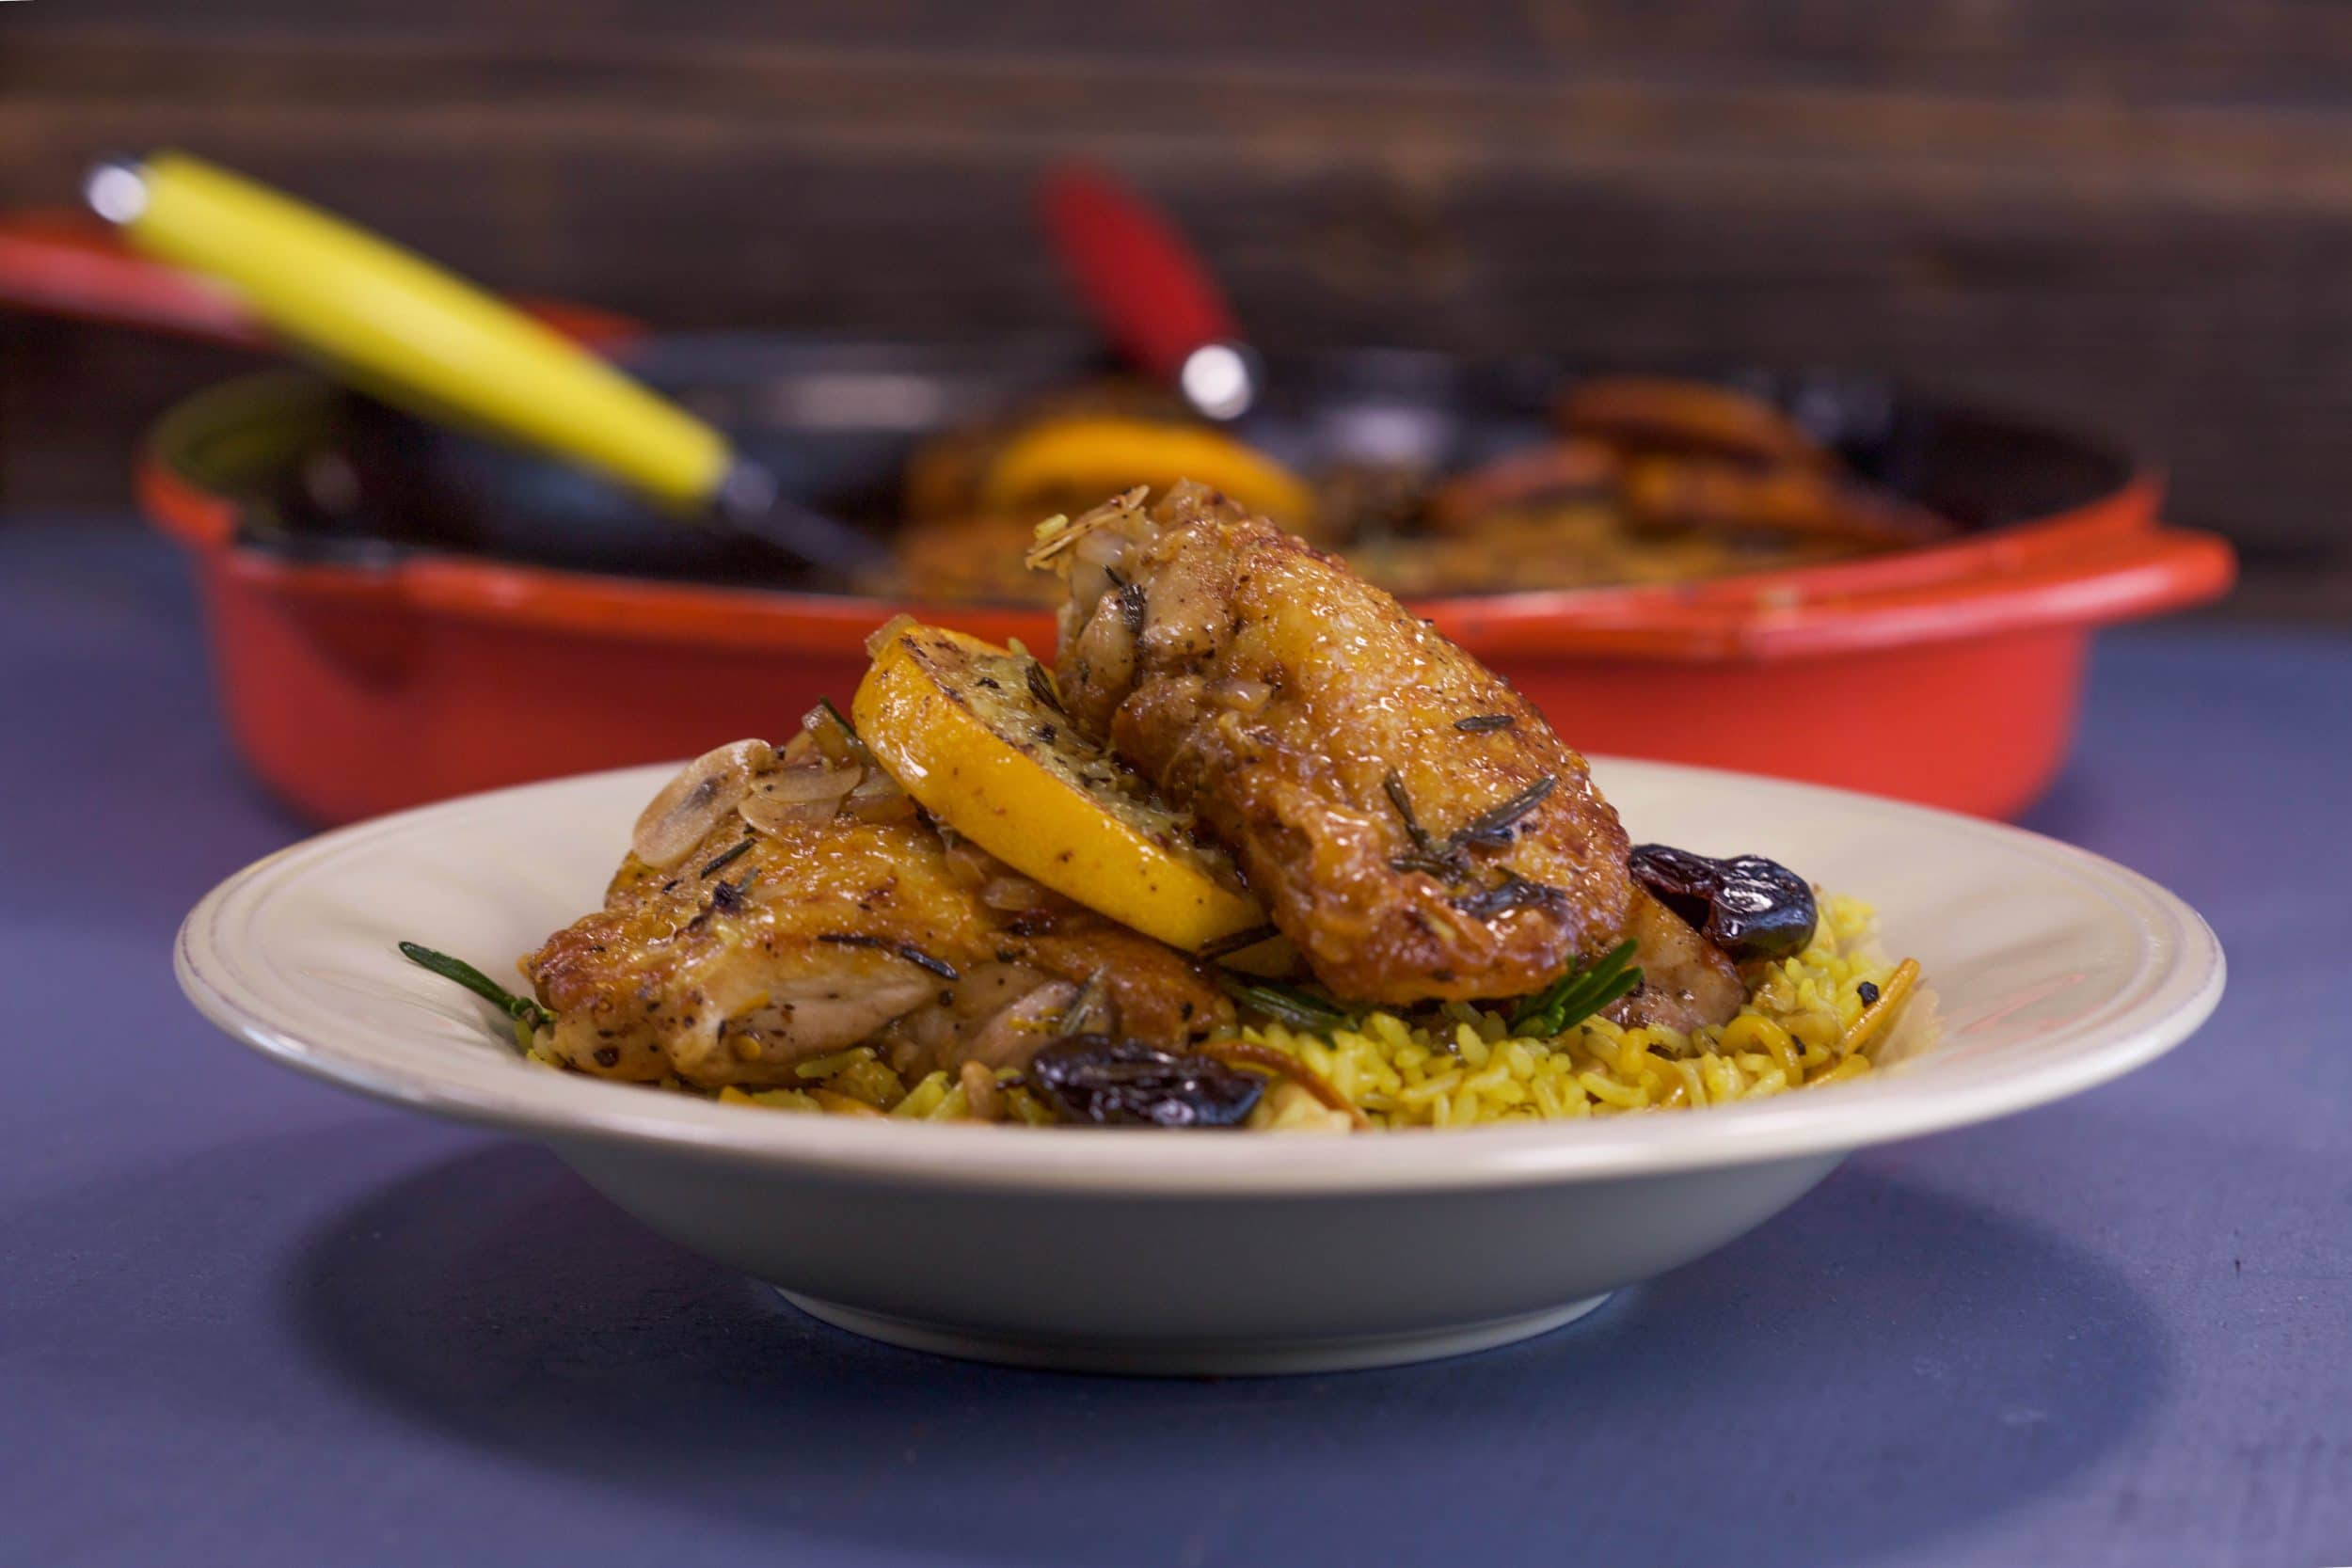 Chicken Thighs with Orange and Rosemary, and Saffron Rice with Pine Nuts and Golden Raisins